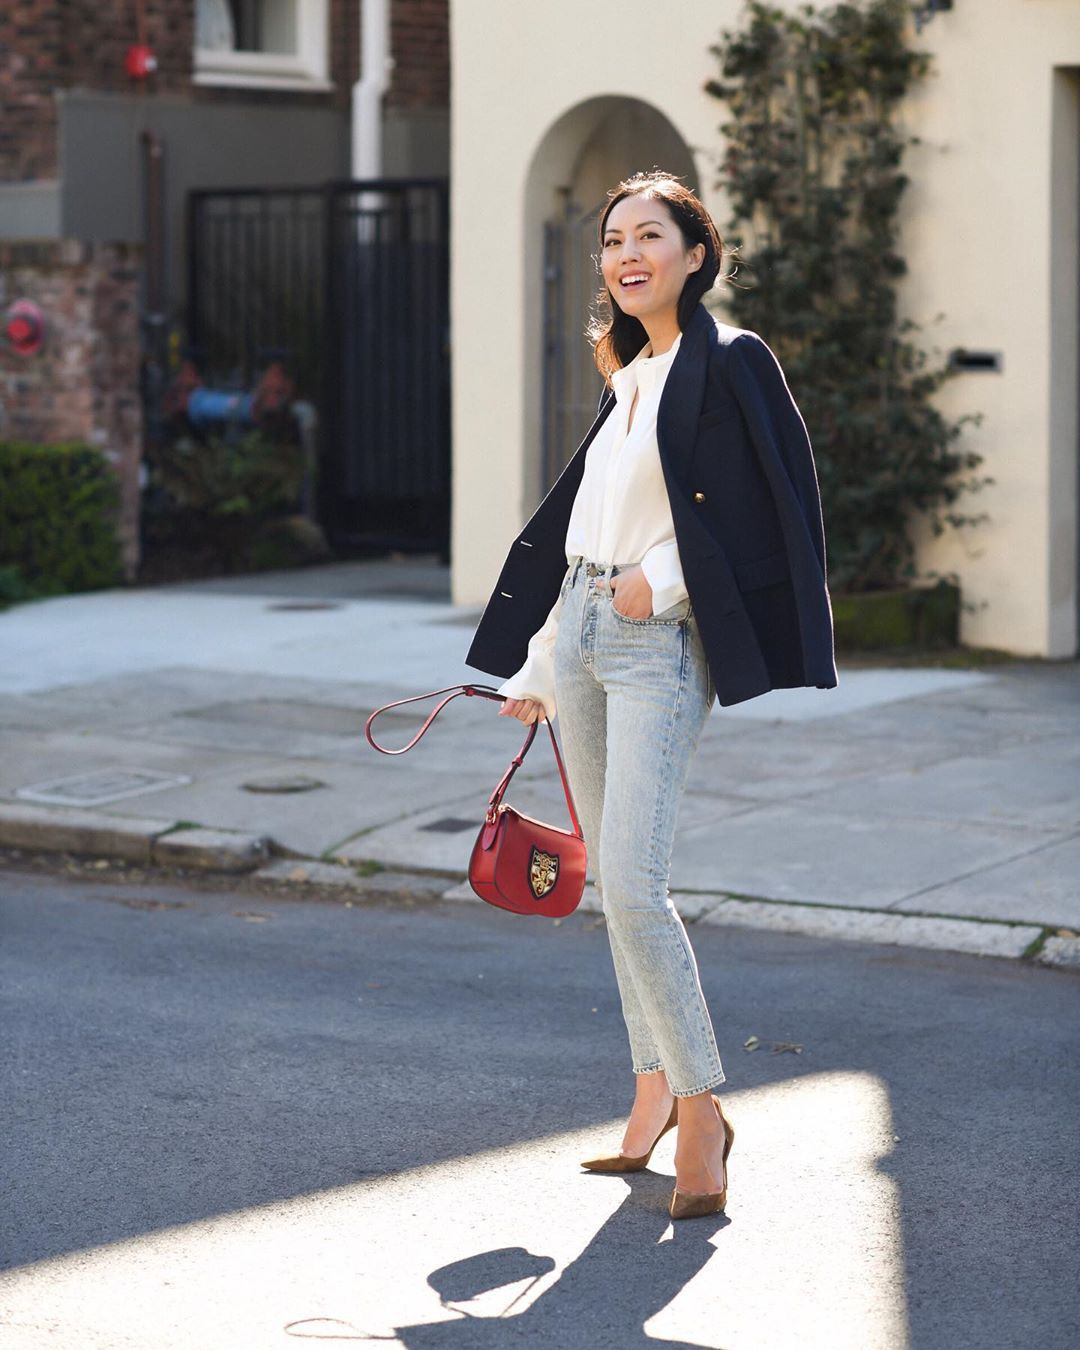 jeans skinny jeans high waisted jeans pumps coachella red bag white blouse